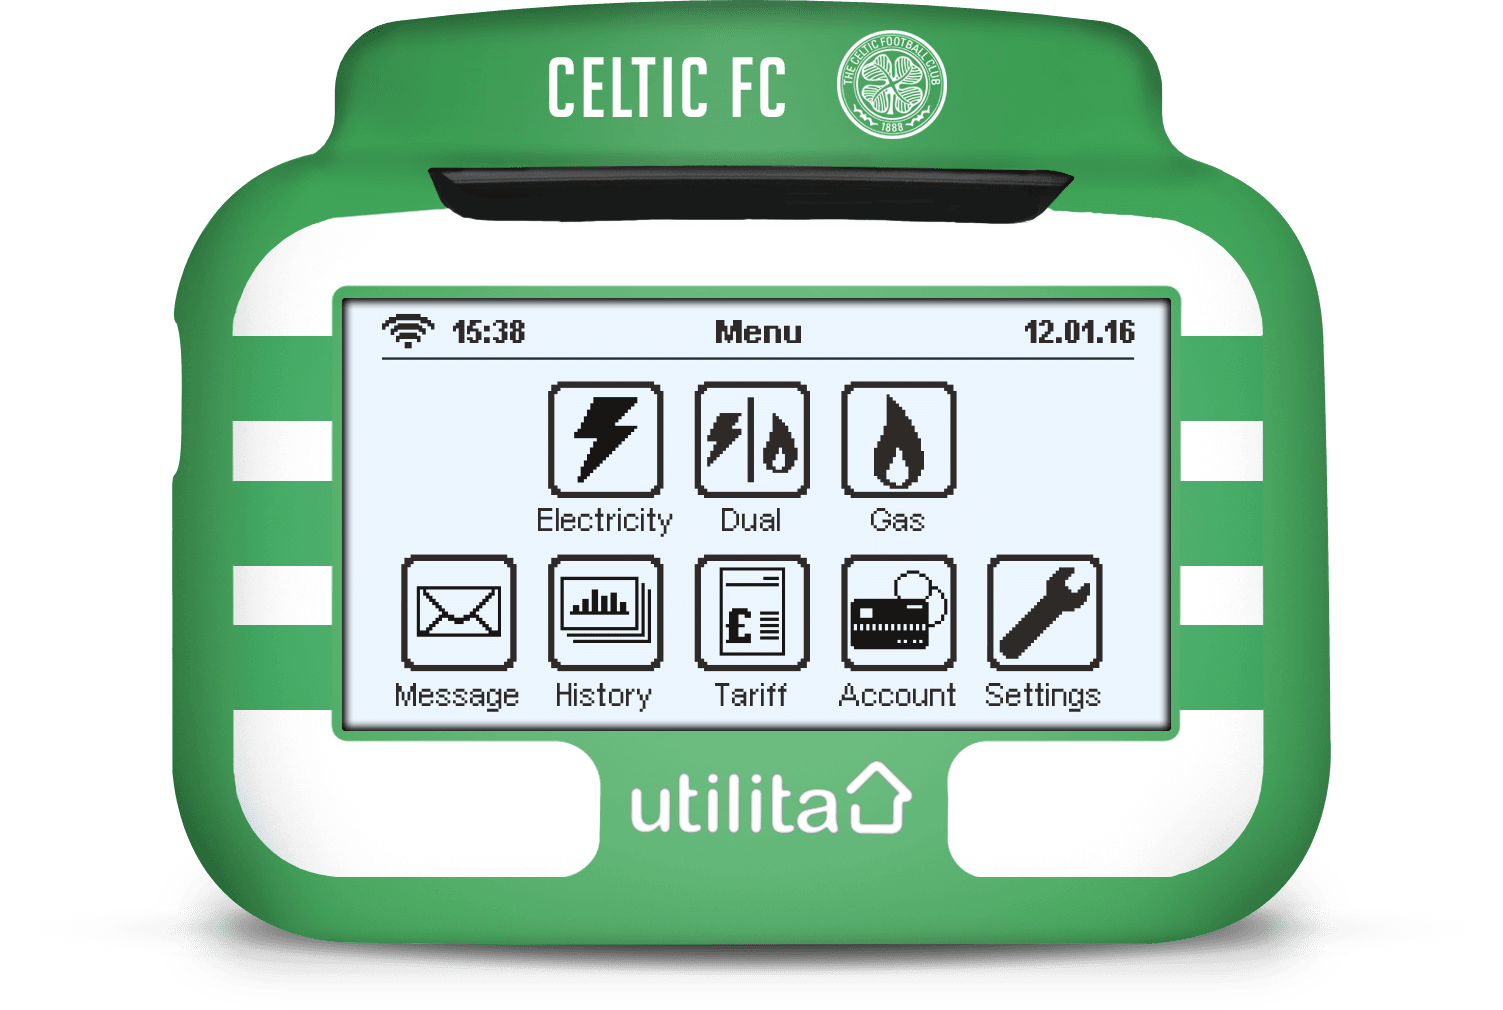 celtic In-Home Display Cover